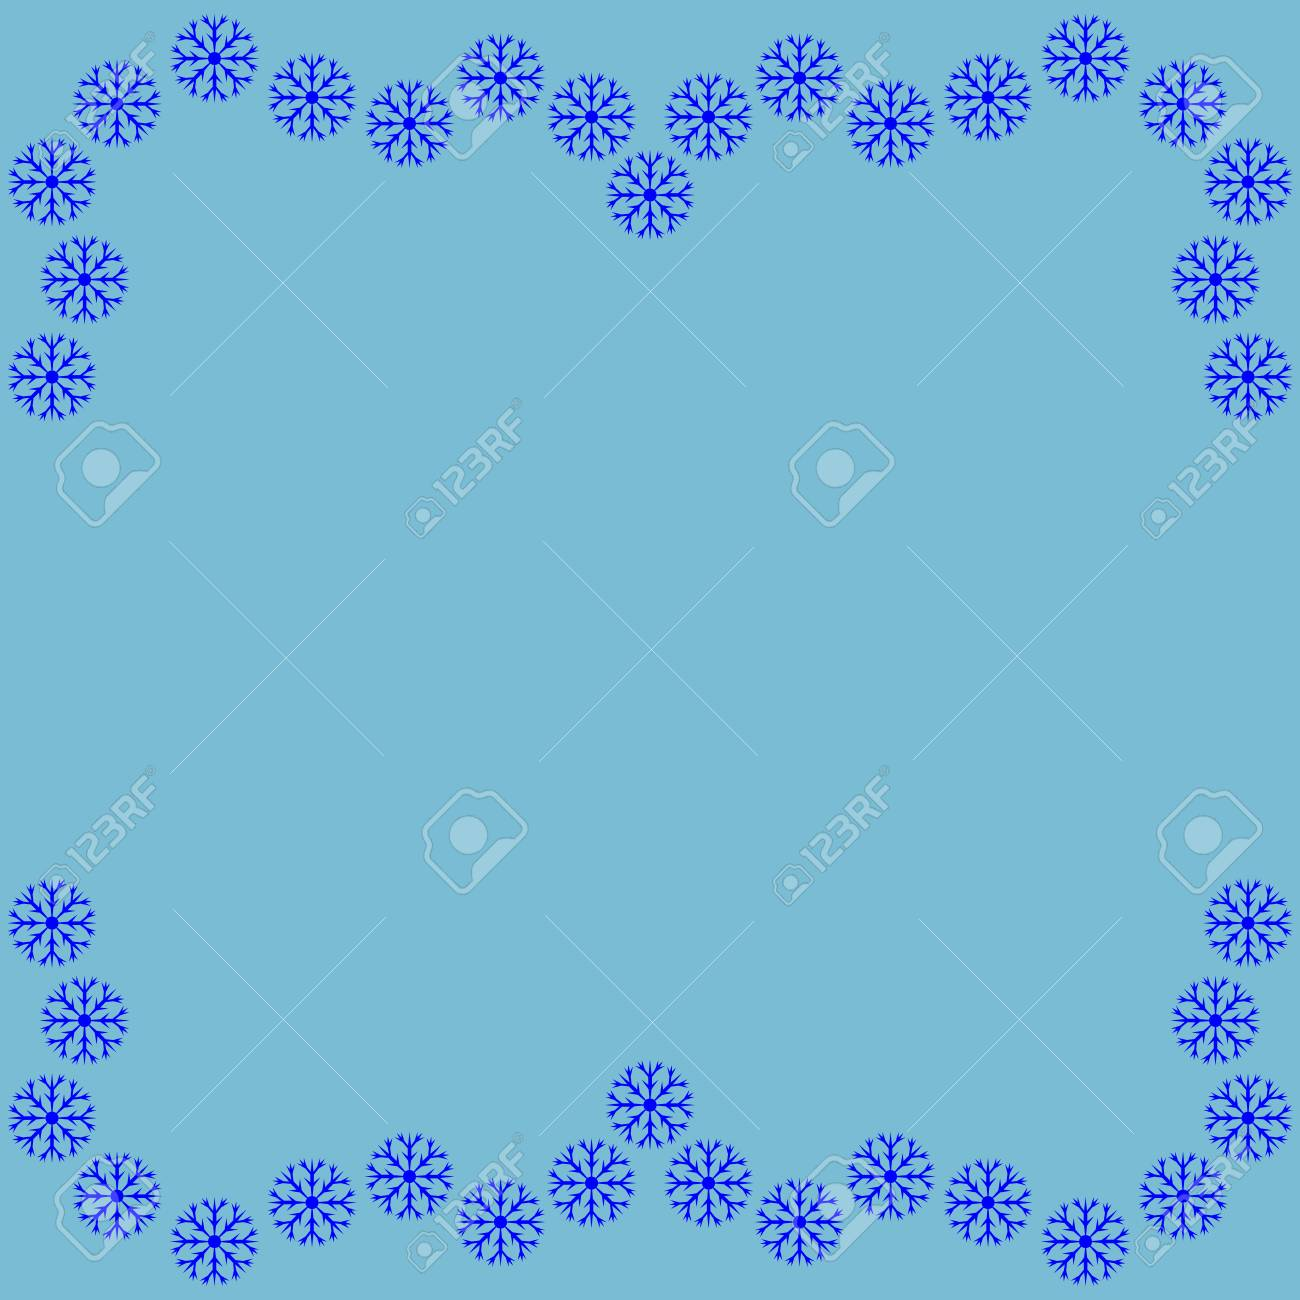 frame with snowflake border decoration winter banner rim decoration new year concept cold